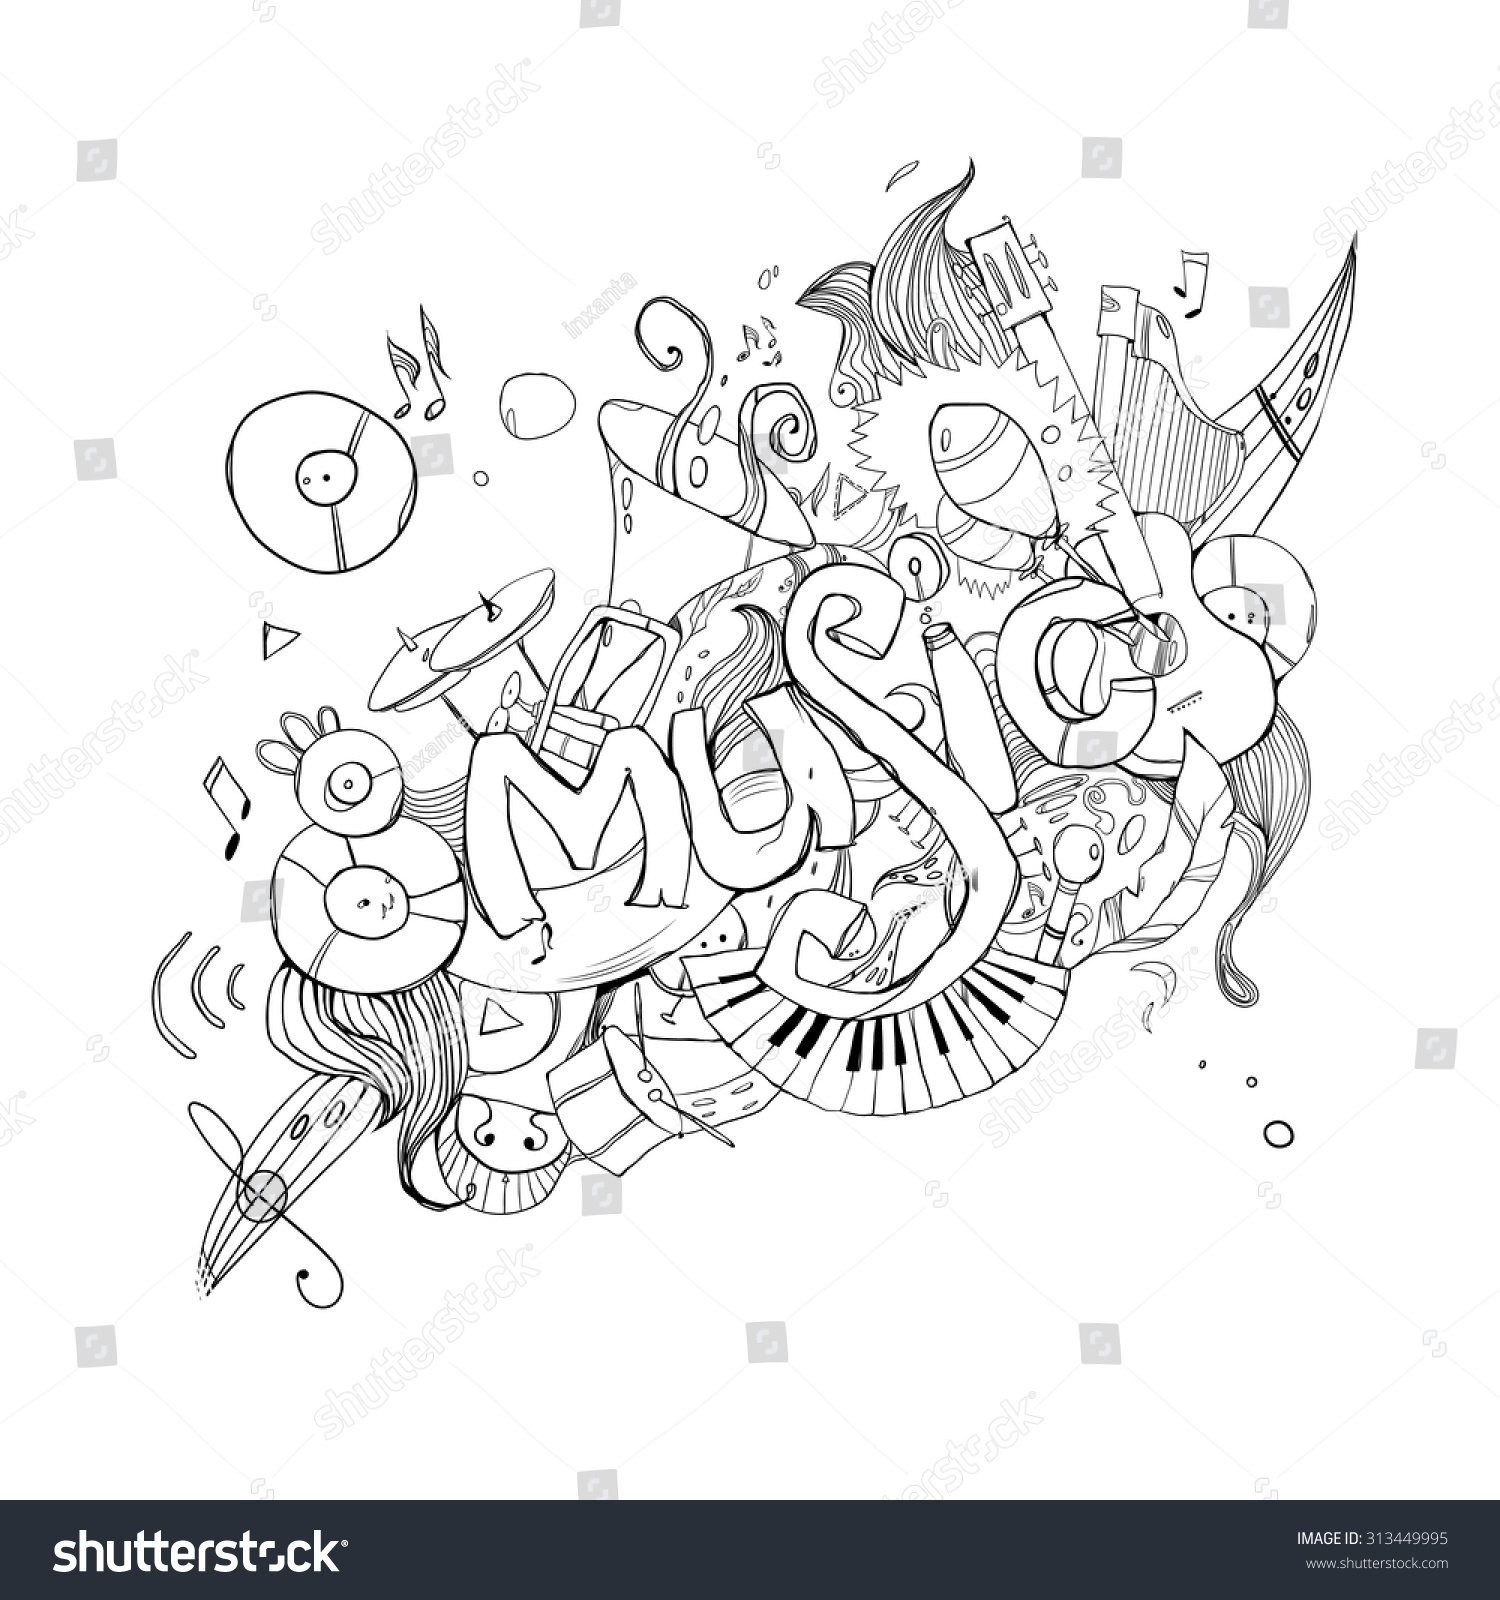 Stock vector music hand lettering and doodles elements - Music Hand Lettering And Doodles Elements Background Vector Illustration Preview Save To A Lightbox